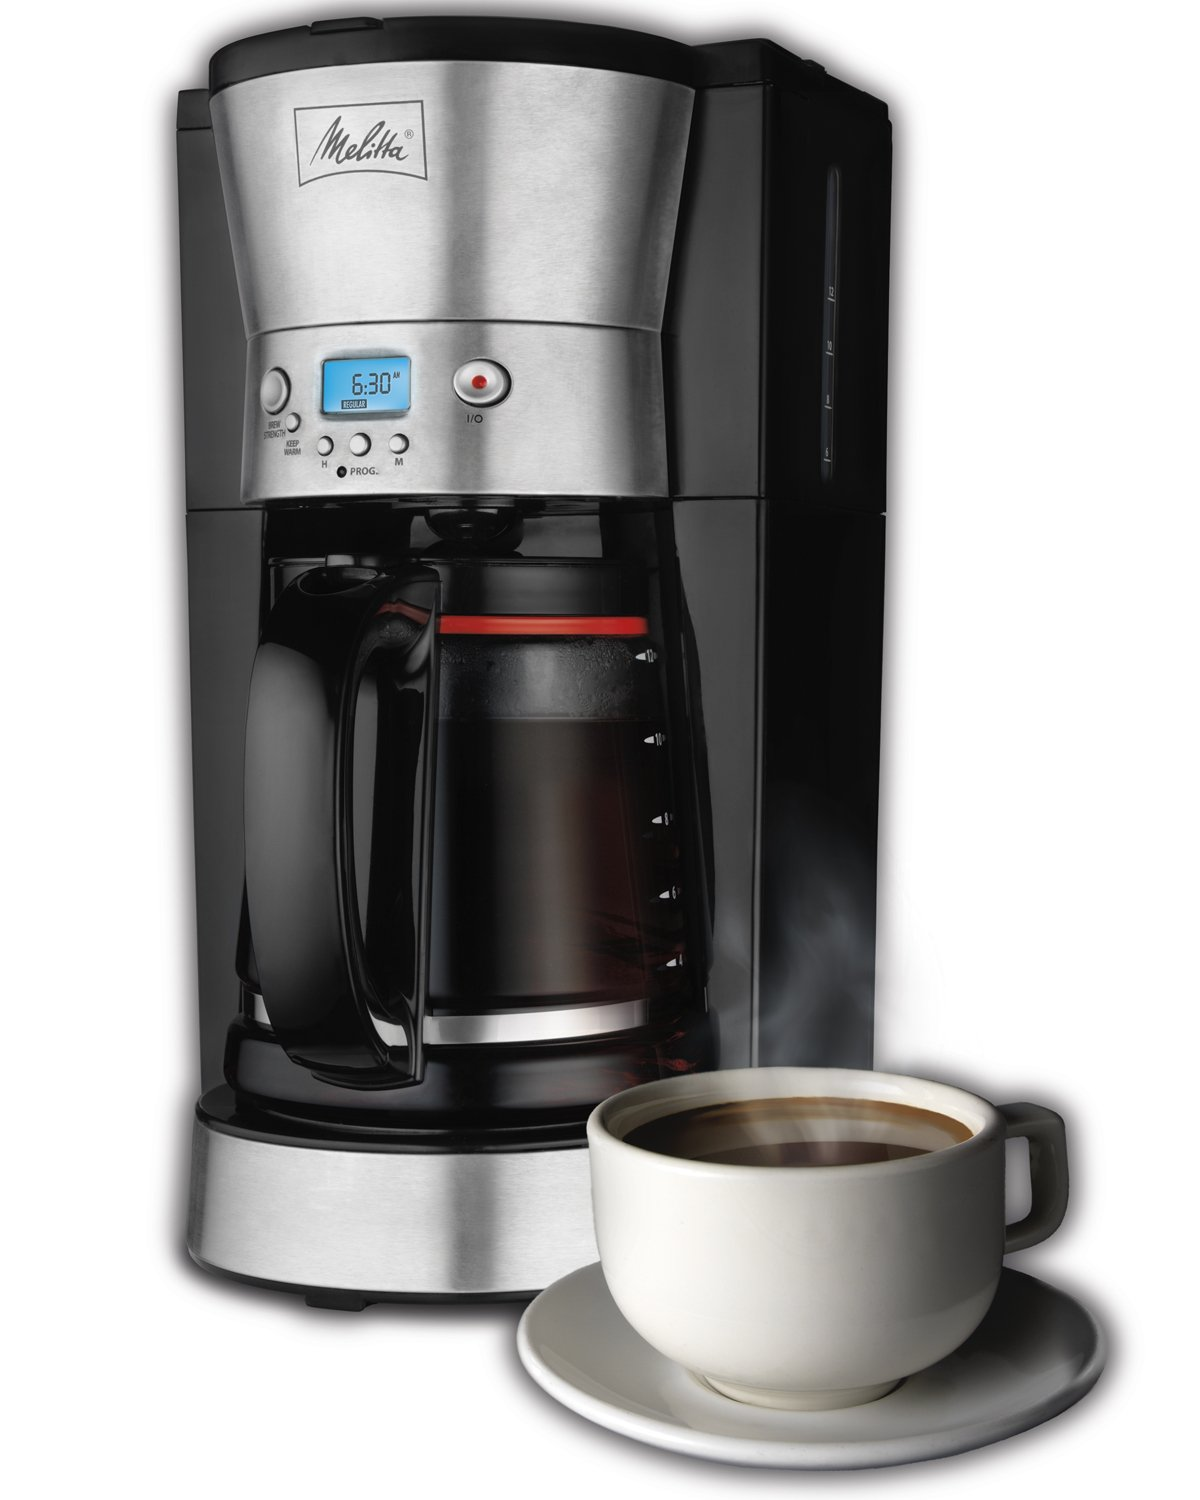 Top rated coffee makers buying guide and reviews Coffee maker brands